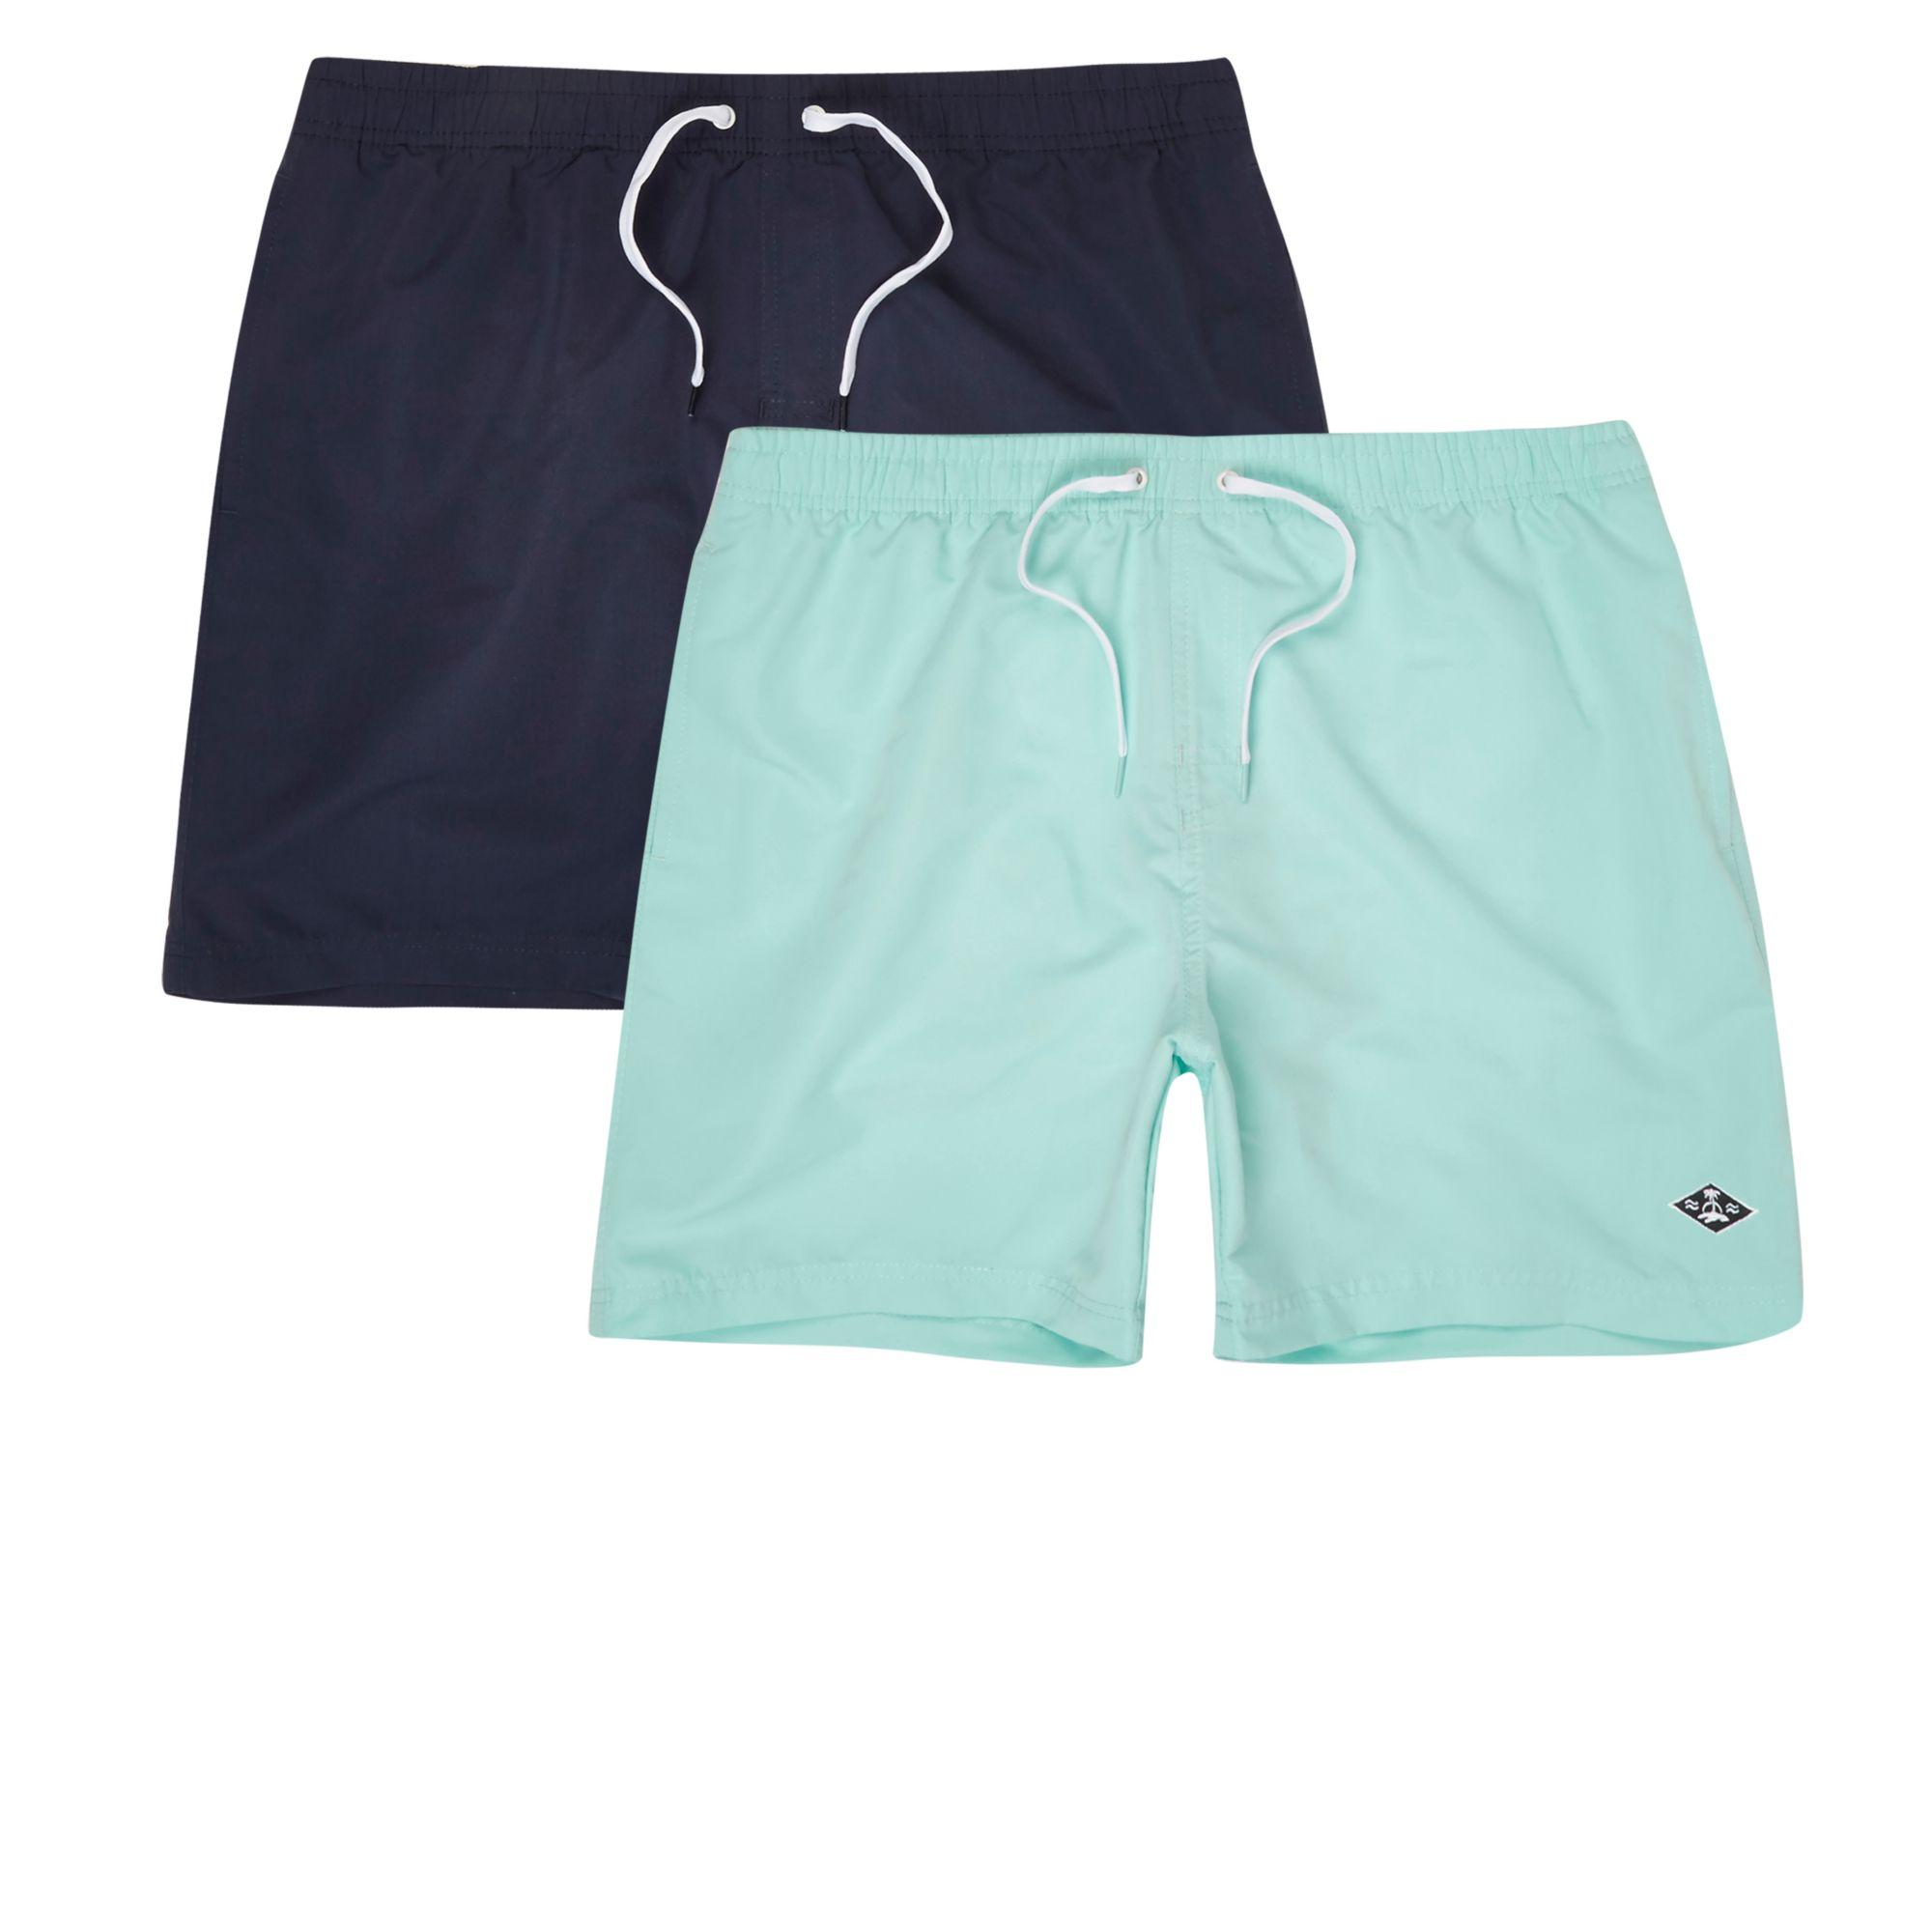 fffcb7af95 River Island Navy And Light Blue Swim Shorts Two Pack in Blue for ...